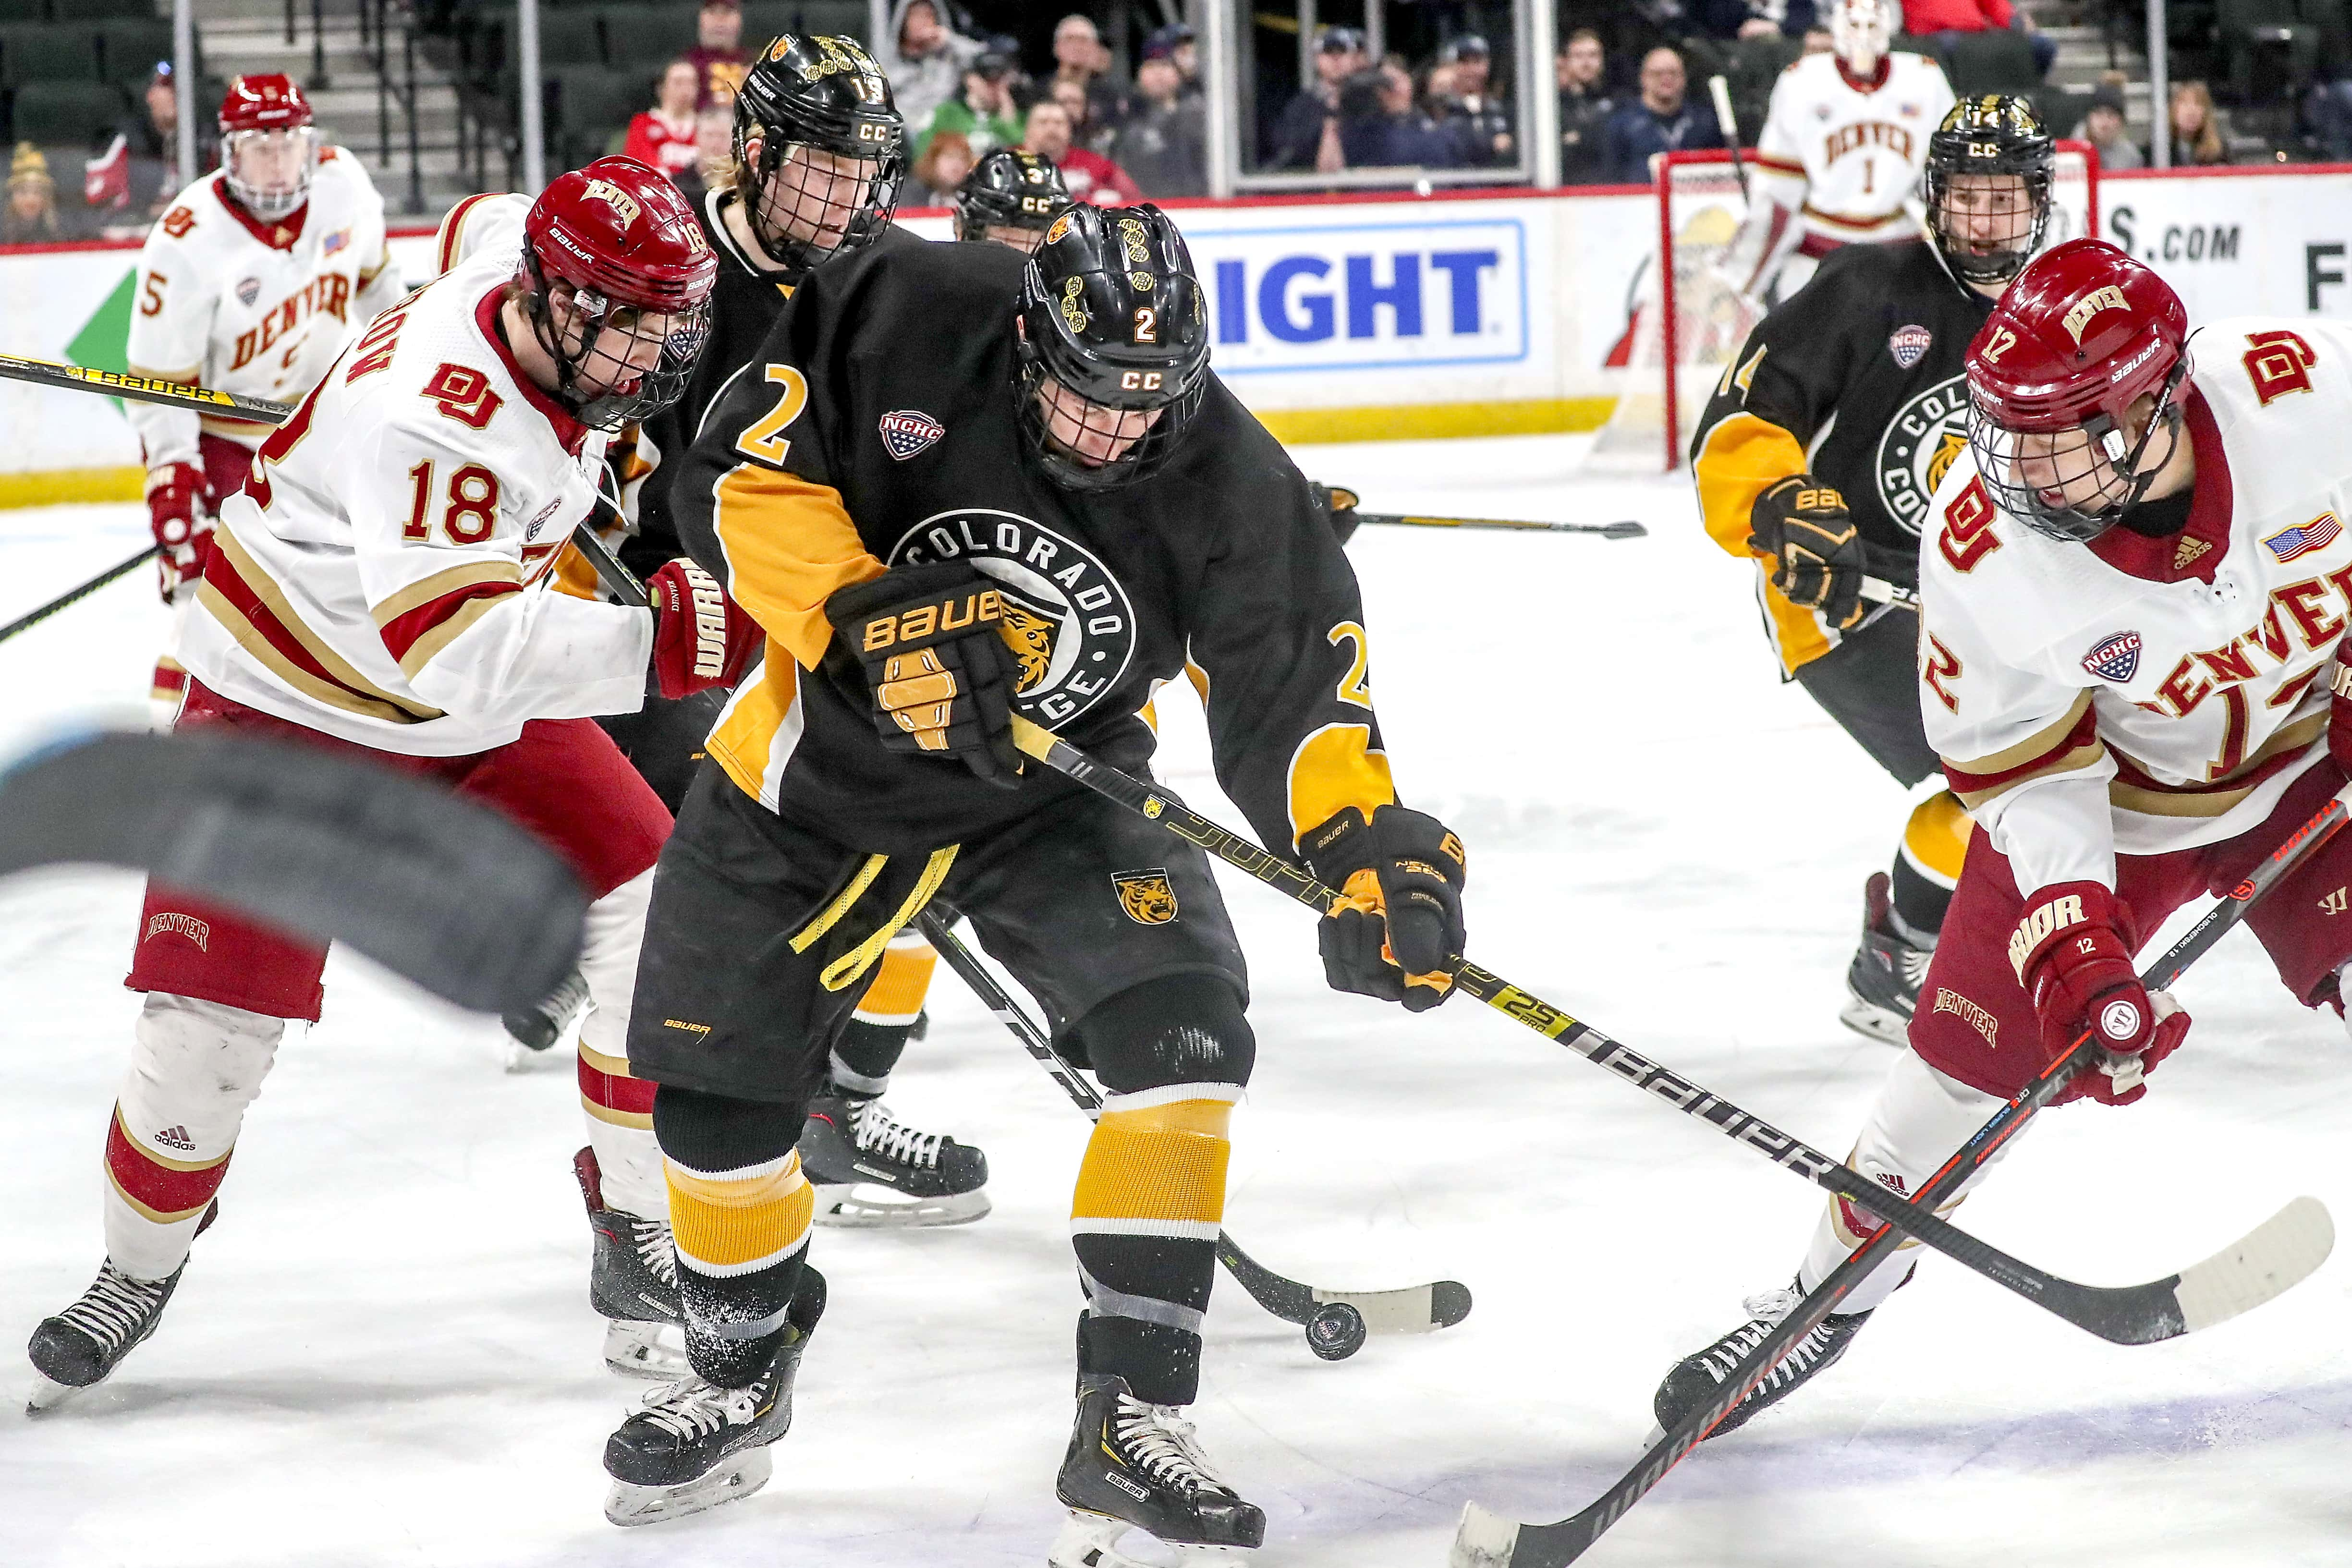 Schlossman Notebook Nchc Could Be The Next Conference To Abandon